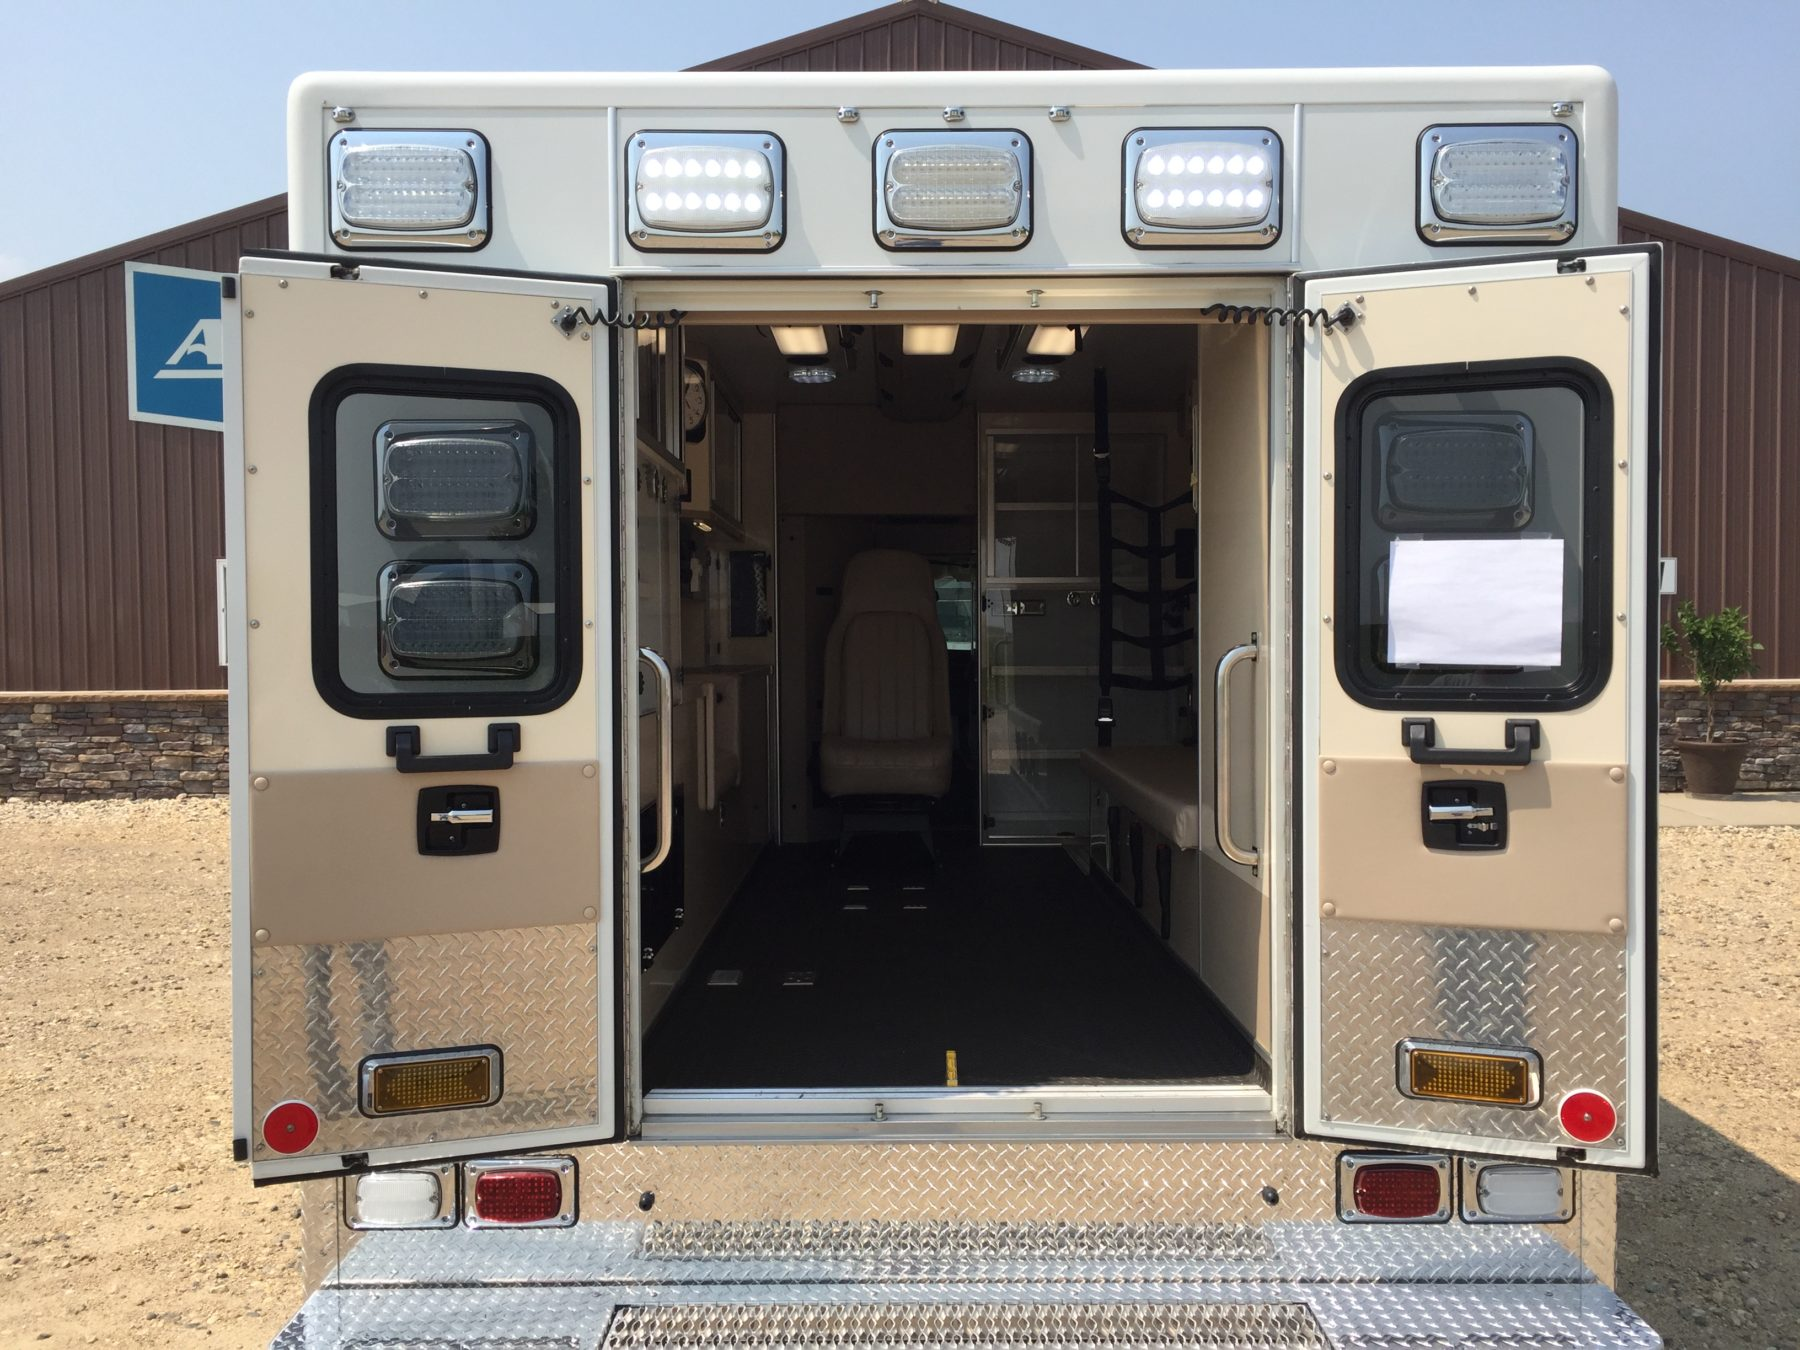 2009 Chevrolet G4500 Type 3 Ambulance For Sale – Picture 9